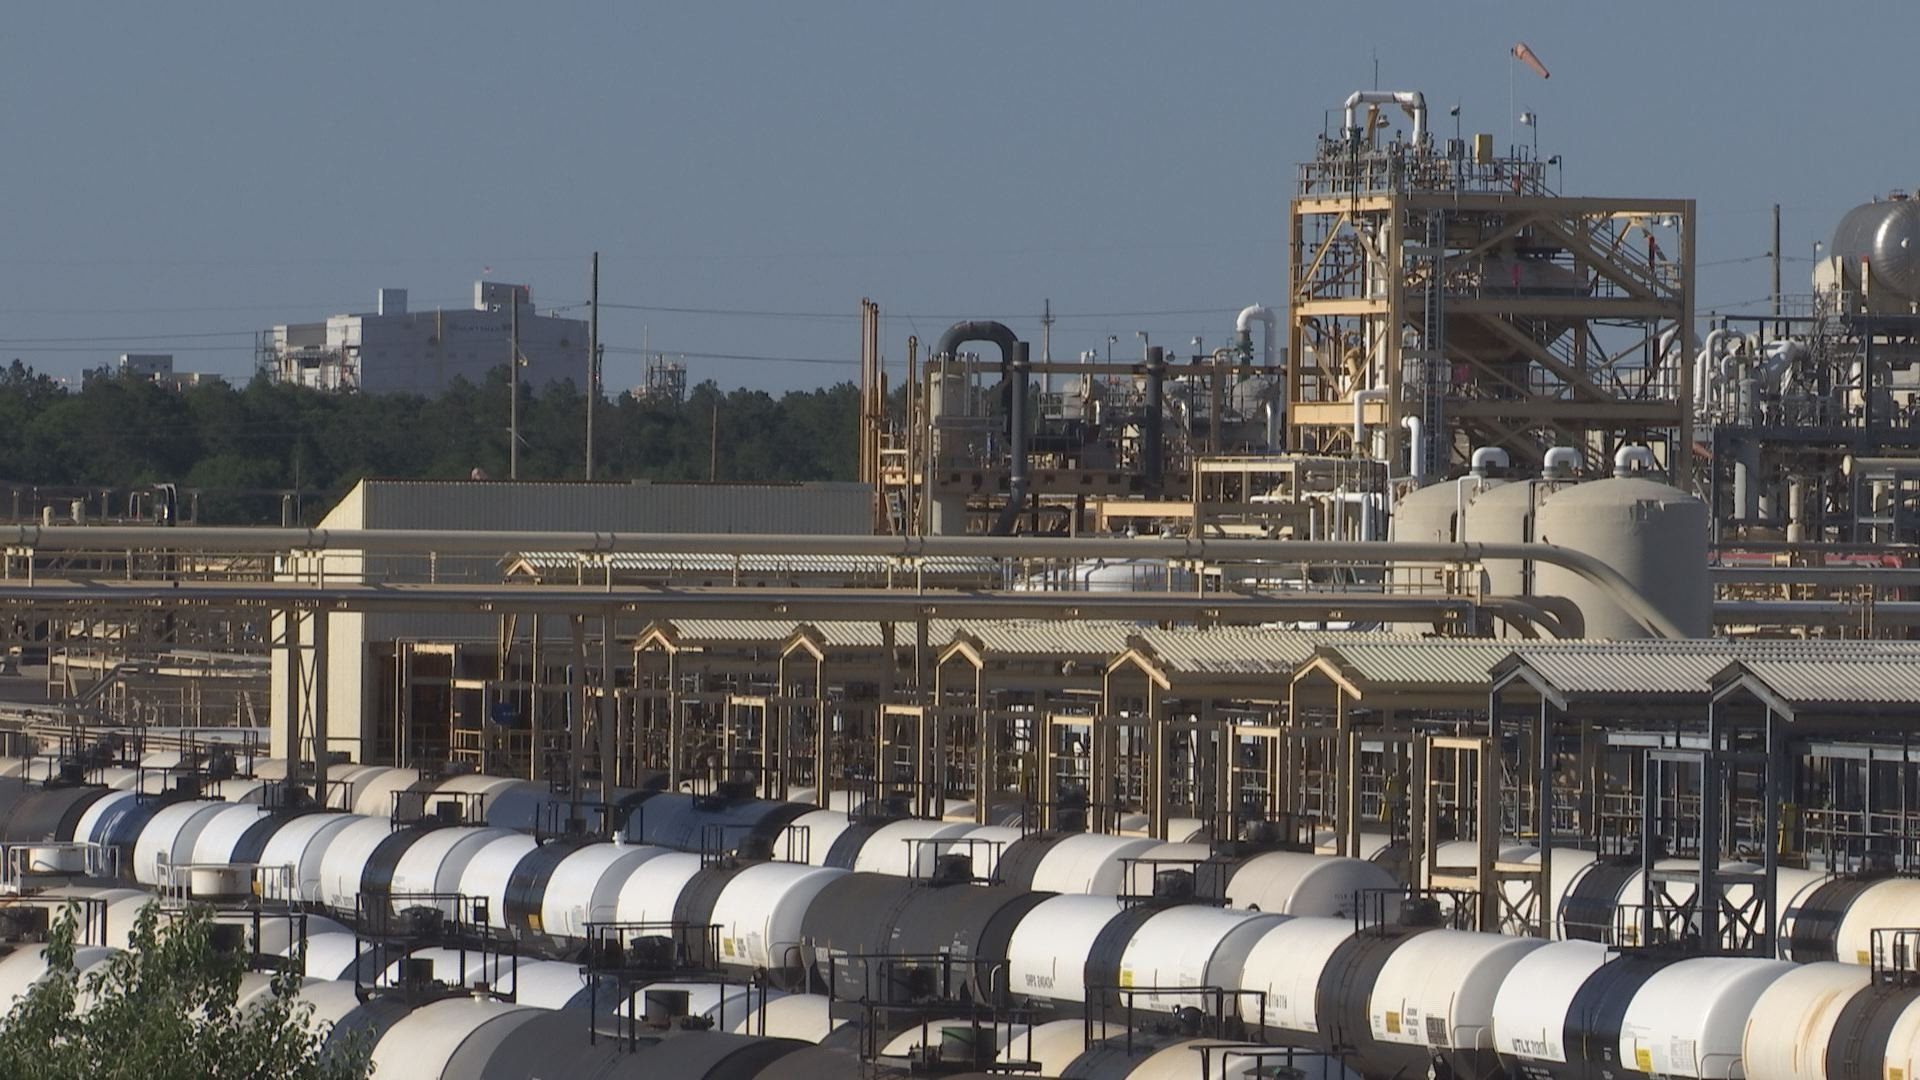 The Olin Chlor Alkali Products location in McIntosh, Ala., has been at the center of controversy since the facility leaked 738 pounds of chlorine gas into the air on February 15. (Credit: Franz Barraza, Chief Photographer, WALA FOX10 News)